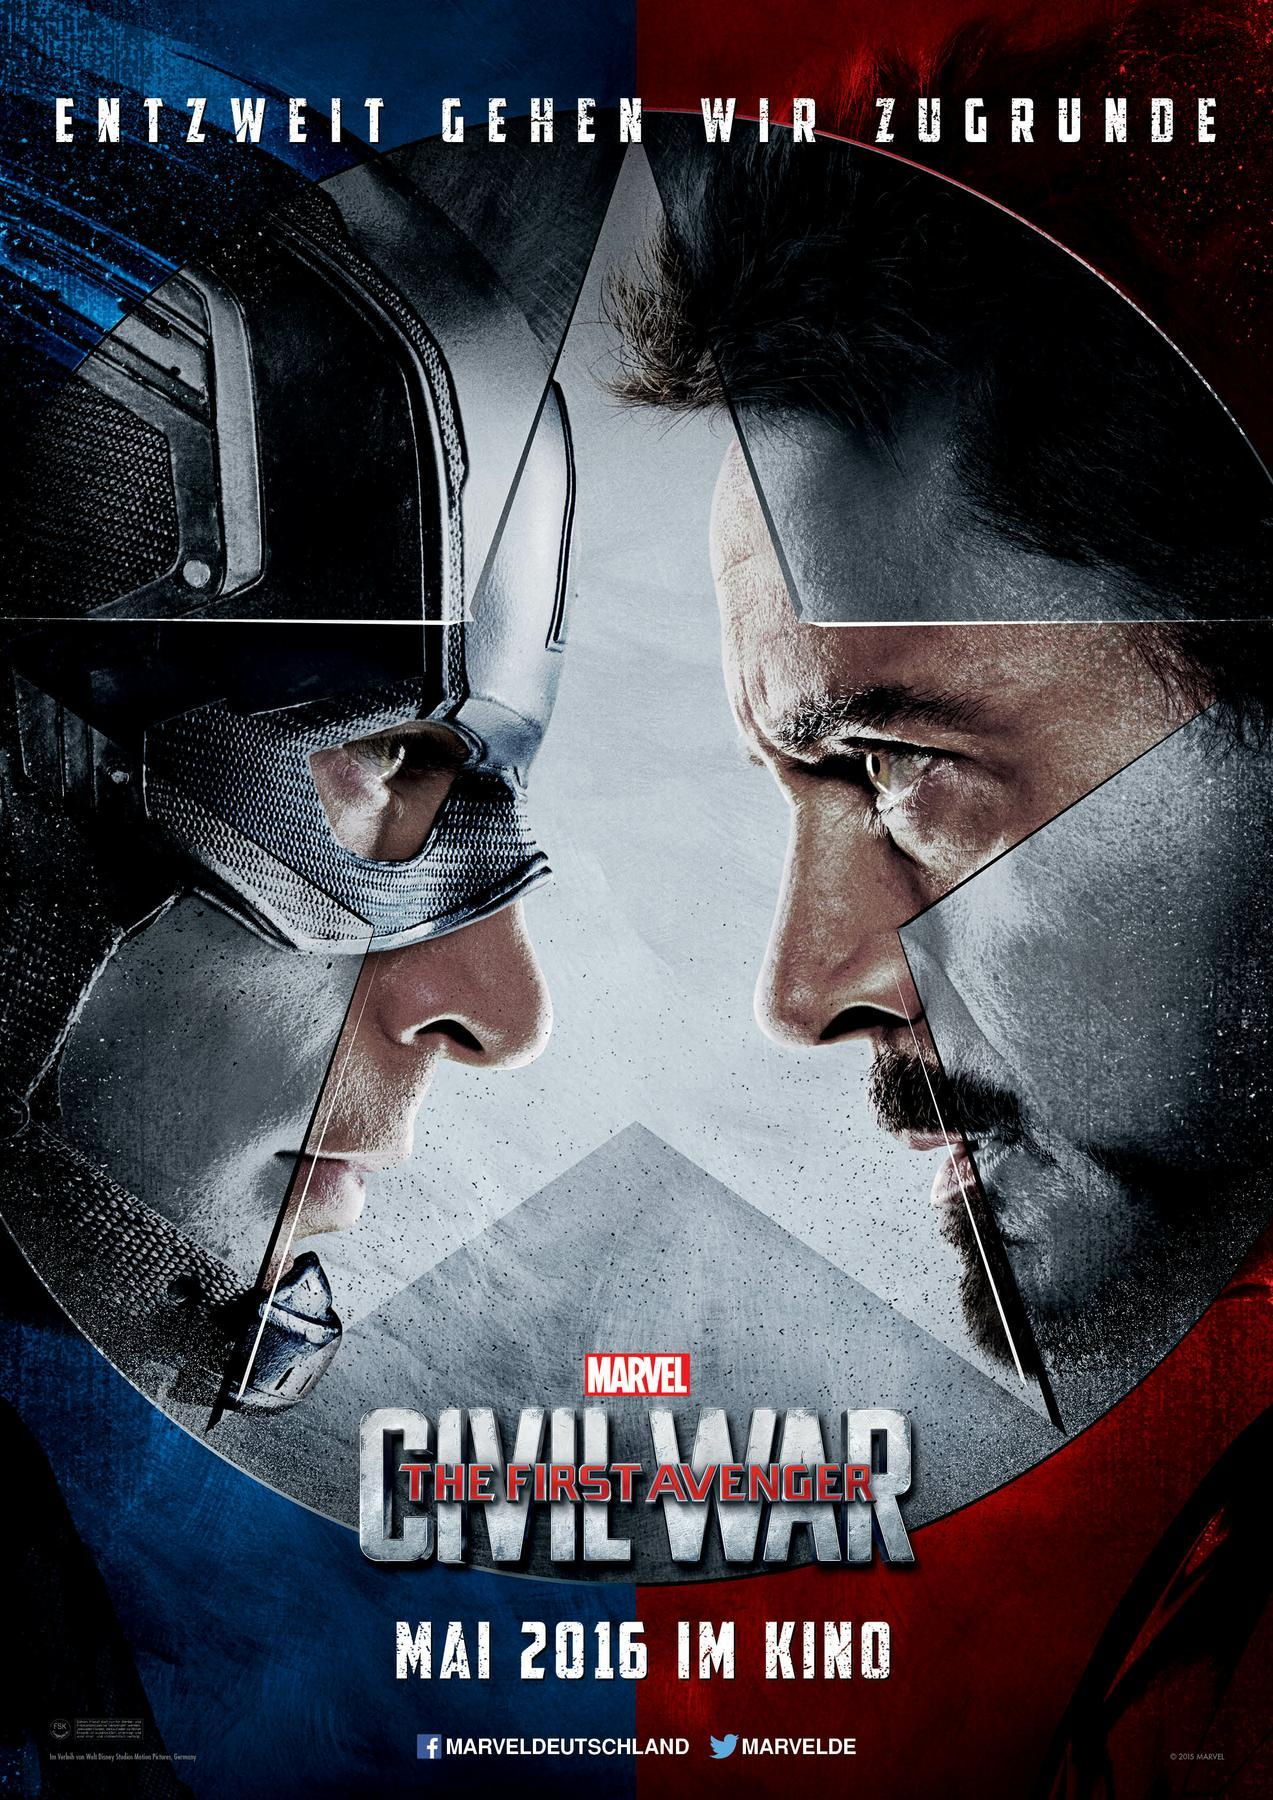 http://www.filmcheck.ch/wp-content/uploads/2016/05/Captain-America-3-Civil-War.jpg